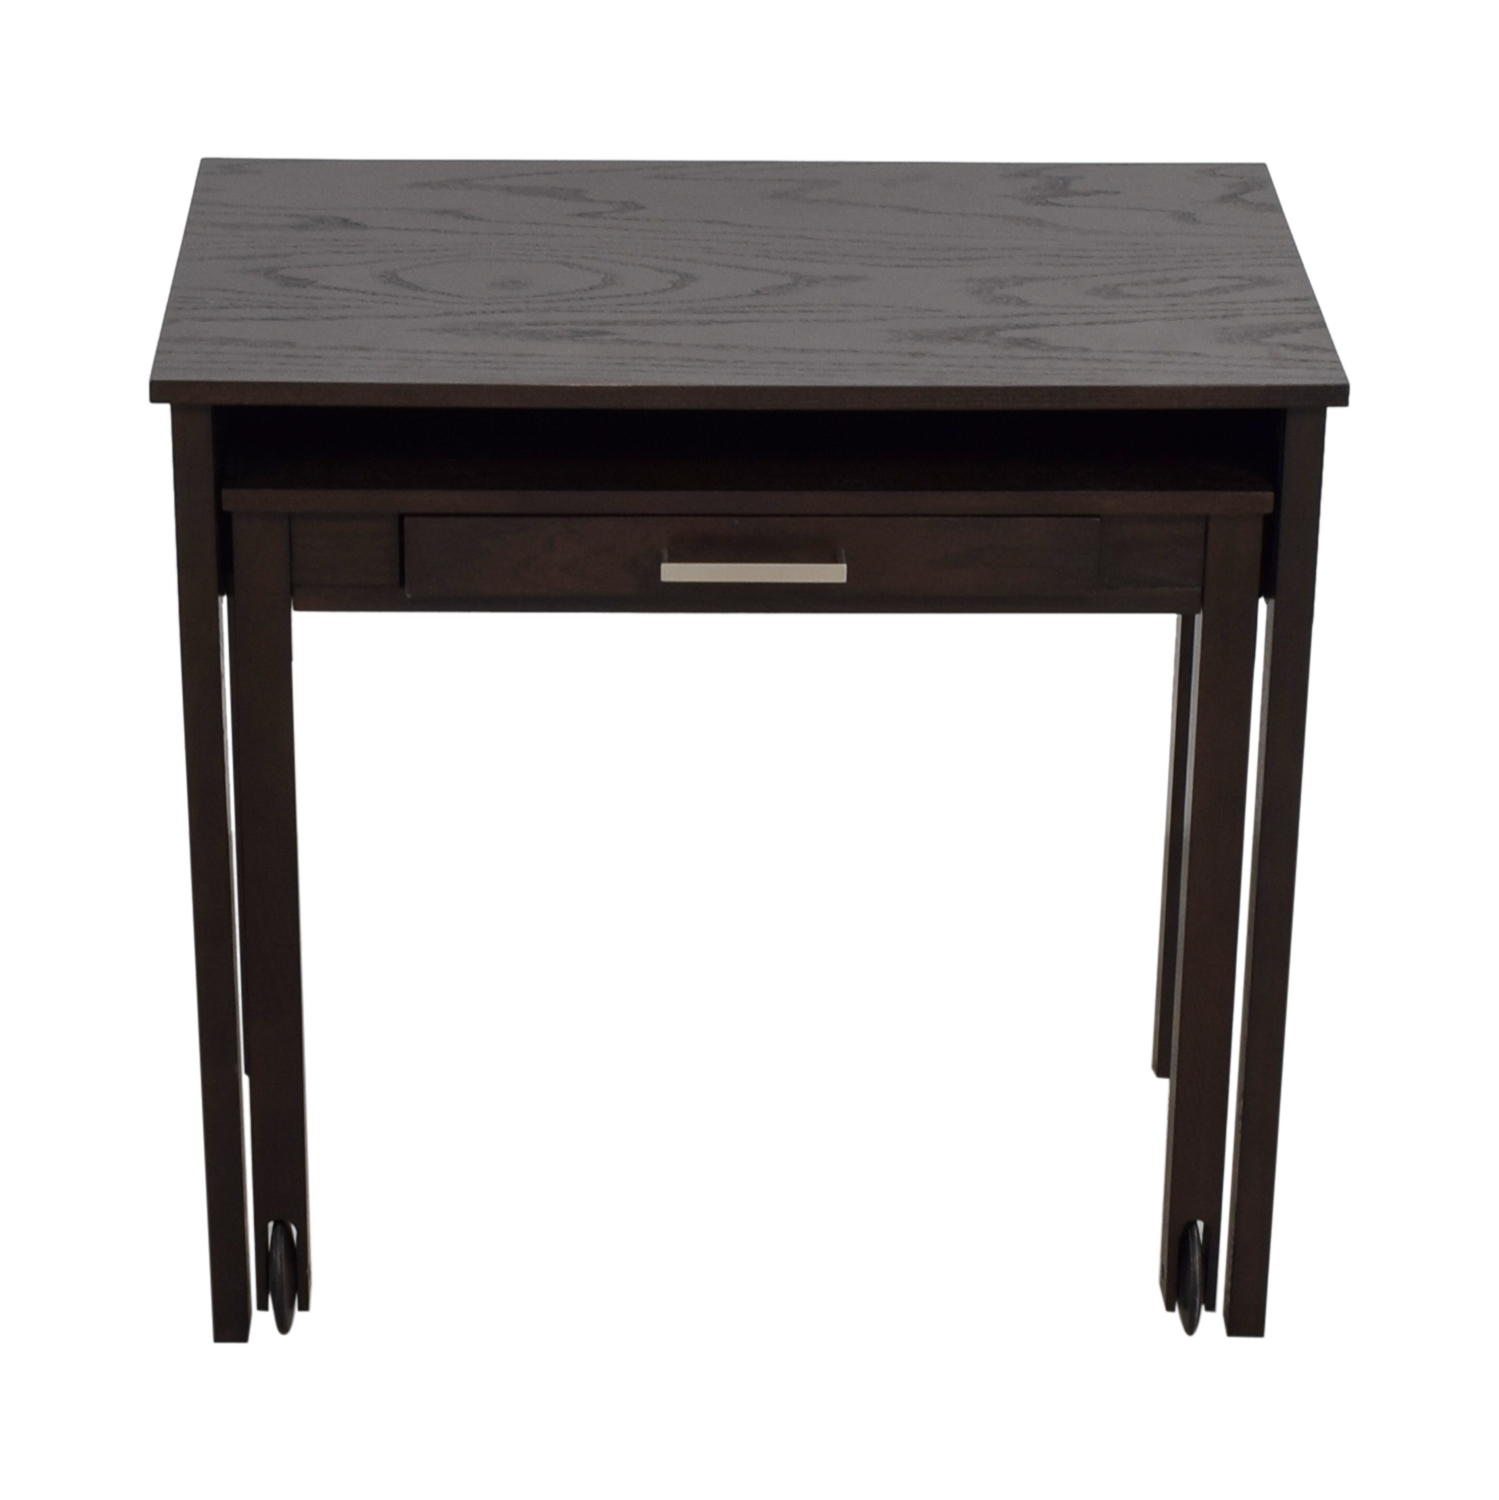 West Elm West Elm Writing Desk dimensions